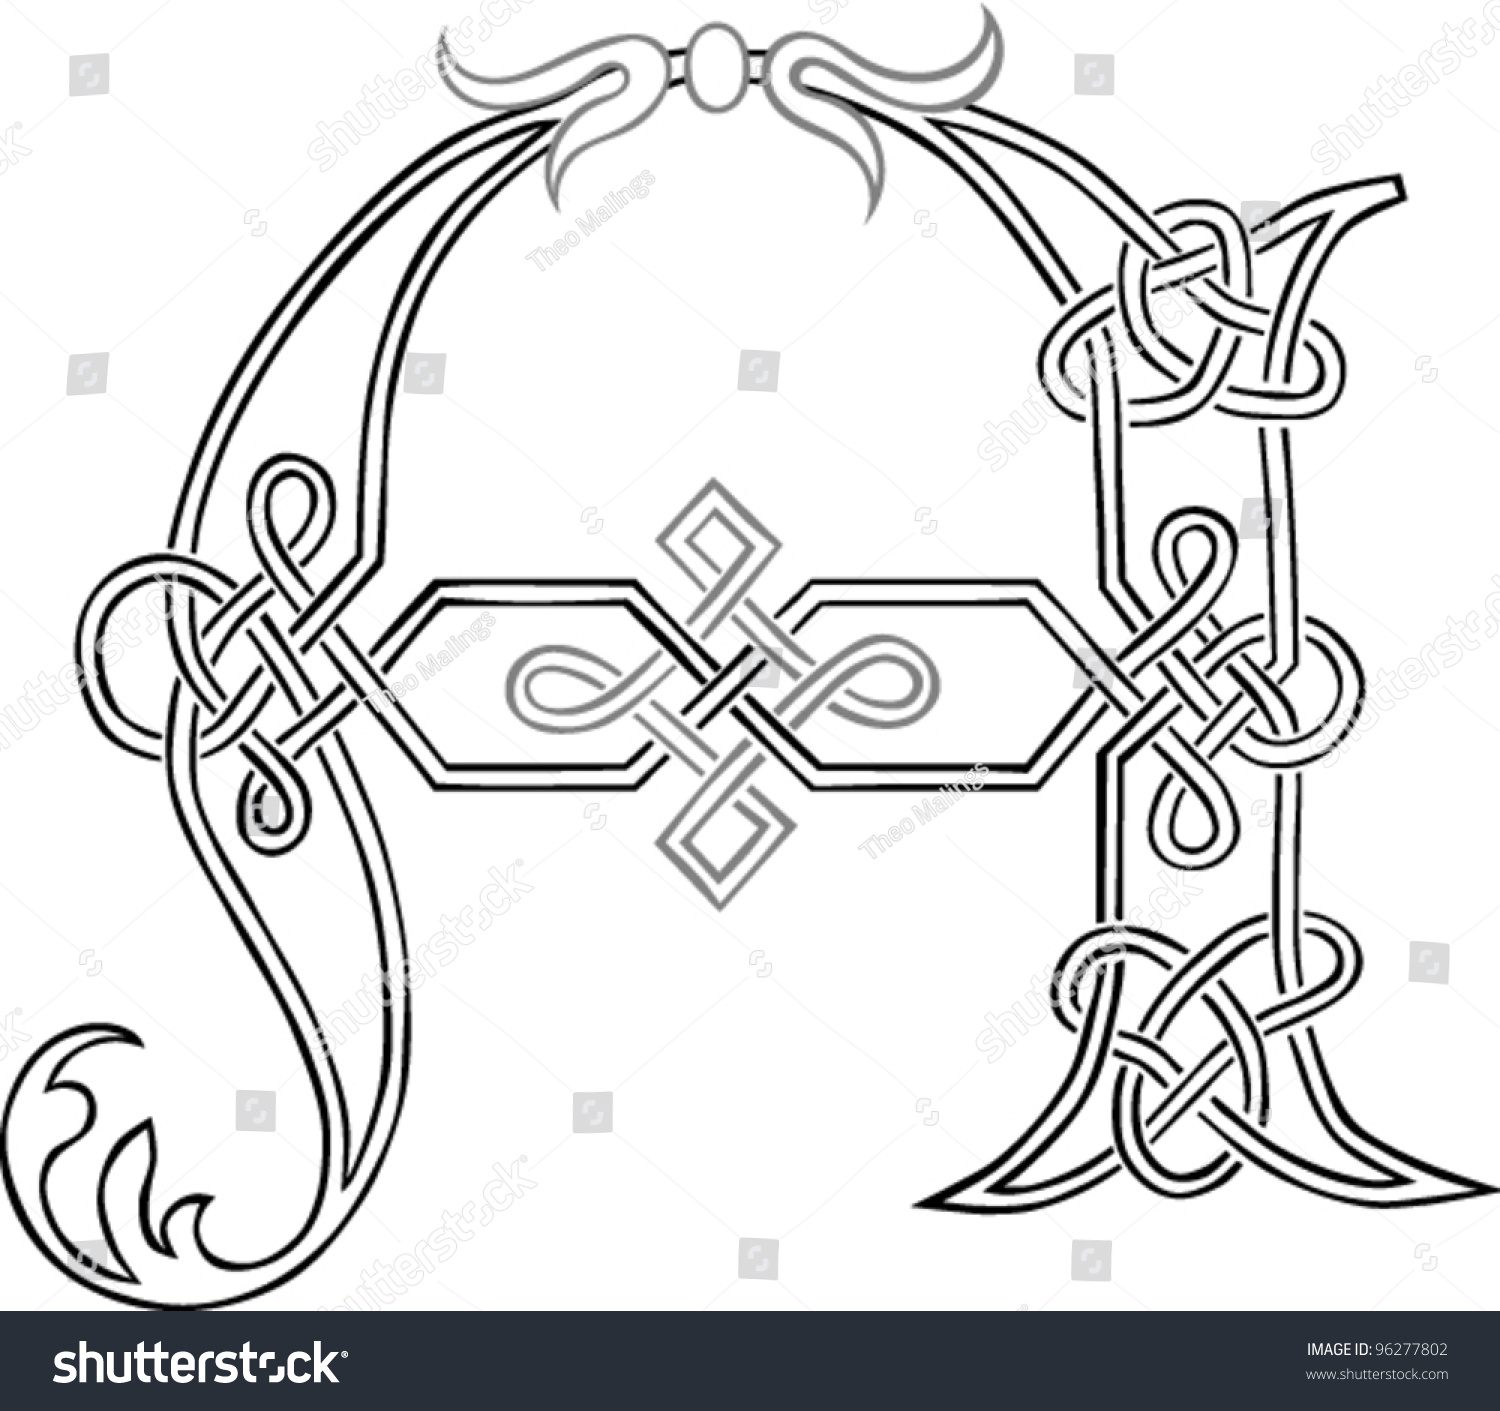 Celtic Knot Letter Mersnoforum